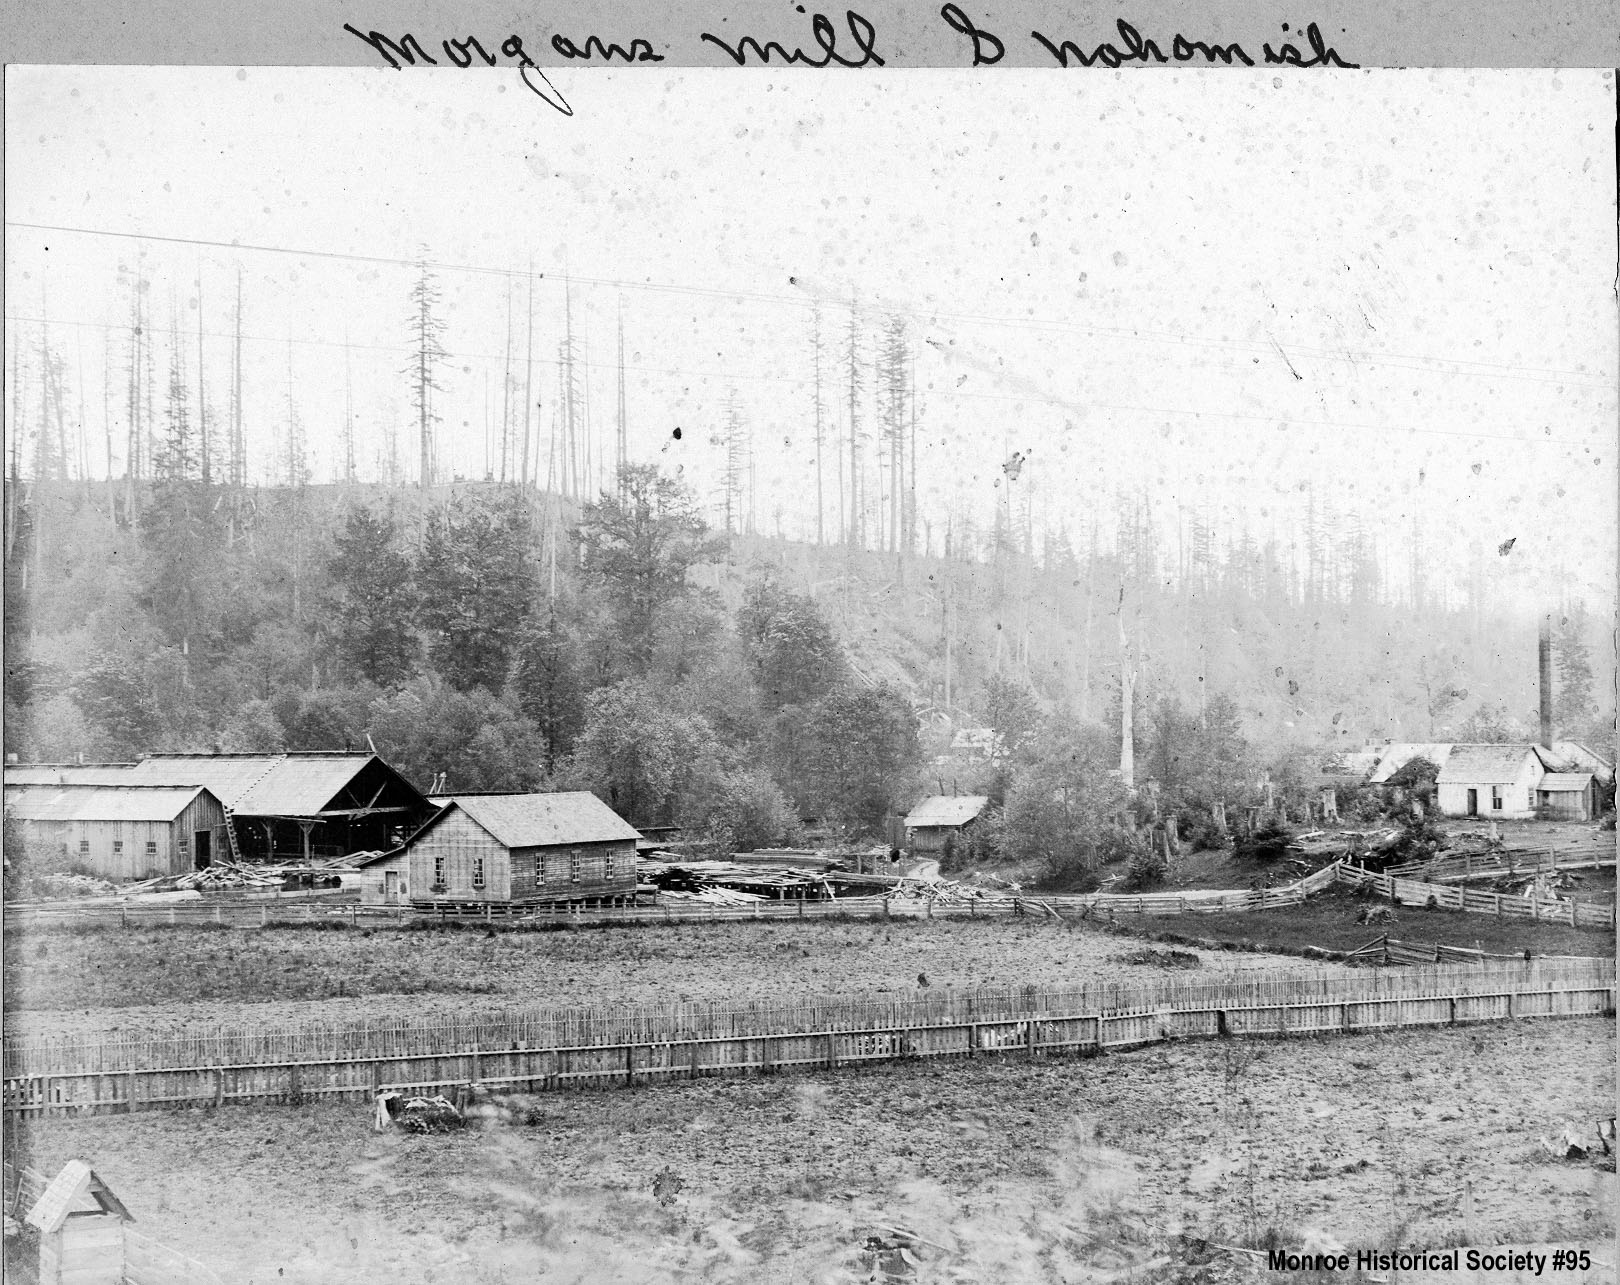 0095 Morgan's Water Power Mill, Snohomish c1879